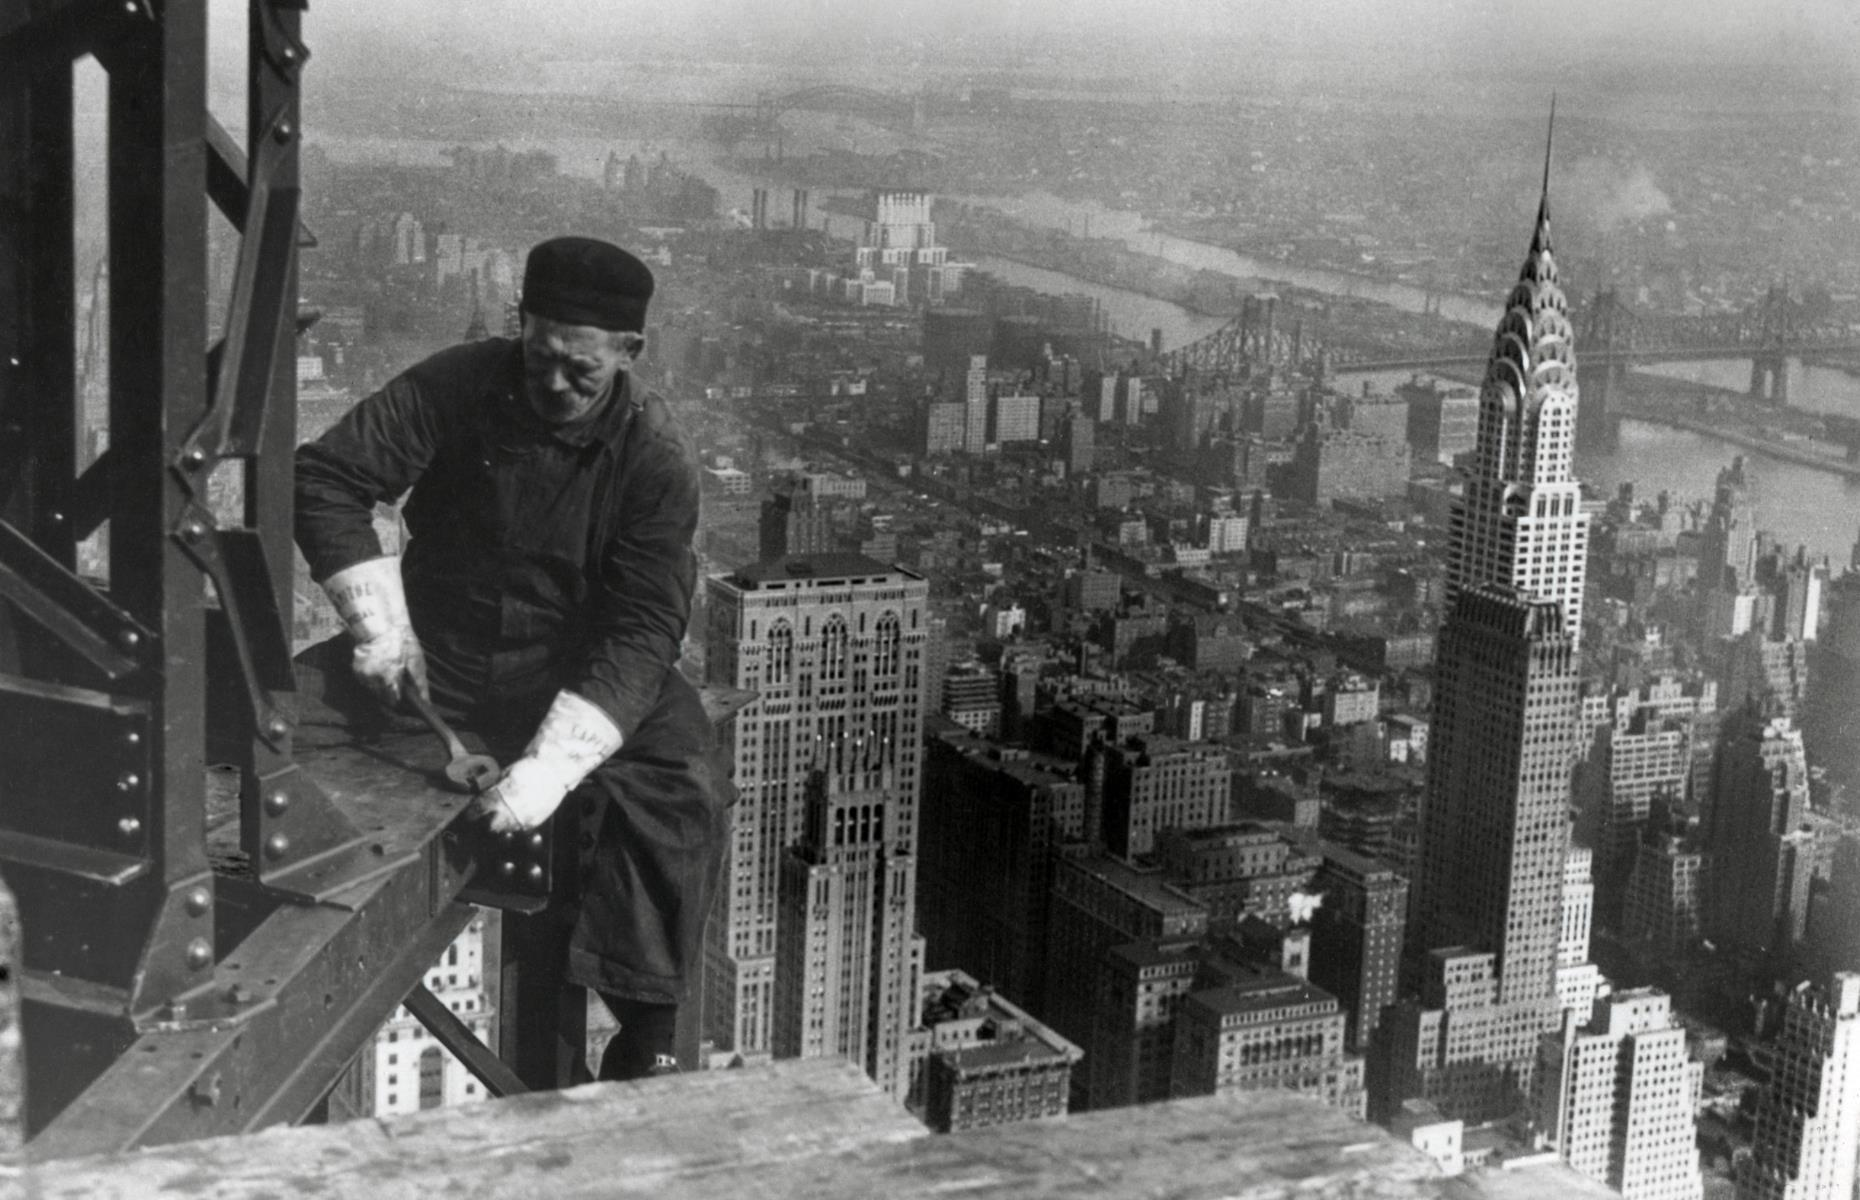 Slide 29 of 51: Pictured here under construction in 1931, New York's Empire State Building took just one year and 45 days to build. It was the tallest building in the world until the 1970s, when it was replaced by the World Trade Center. Today, more than four million visitors usually take the trip up to the Empire State Building's 86th and 102nd floor observatories each year, to gaze at the city's views from up high.